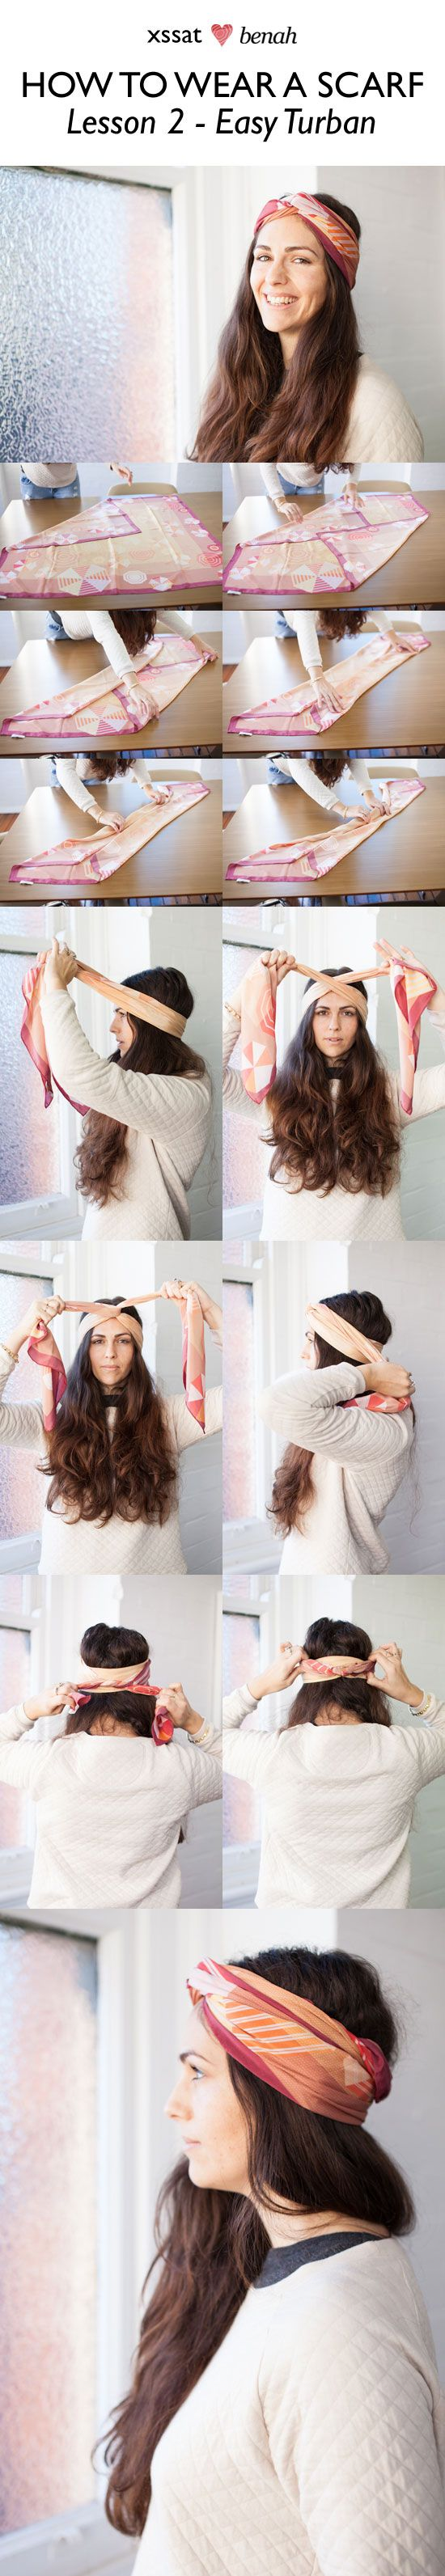 How to wear a scarf - Lesson 2 Easy Turban!